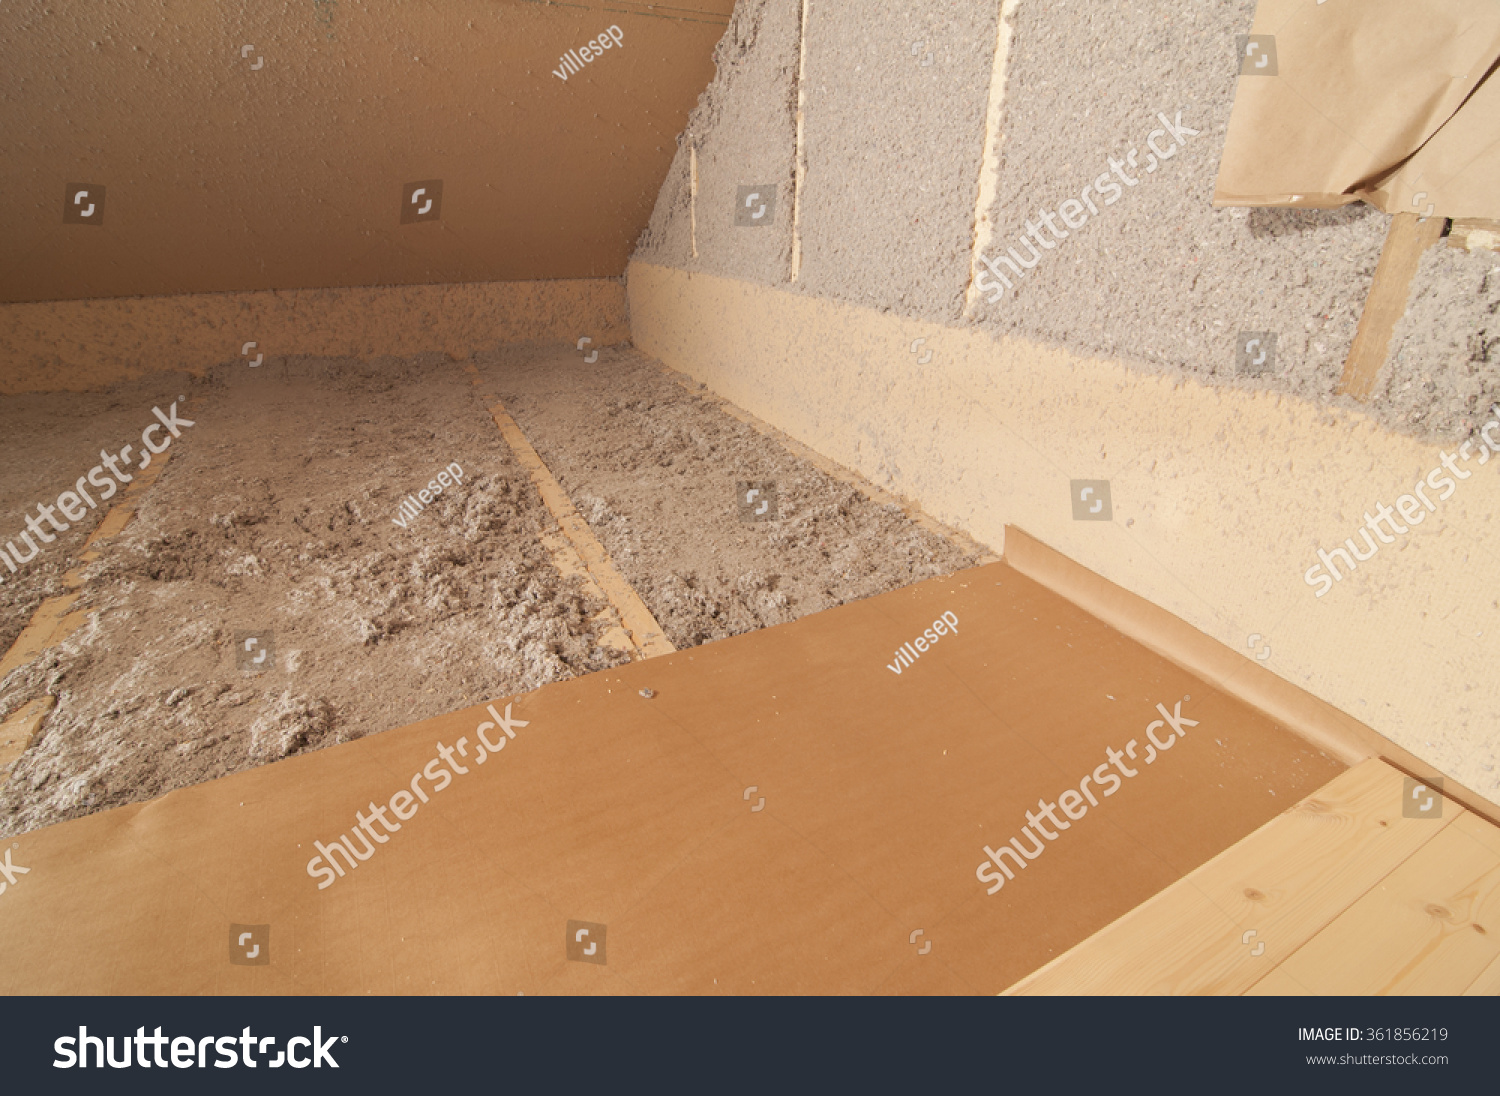 Blow-In Cellulose Fiber Wool Insulation Stock Photo 361856219 : Shutterstock